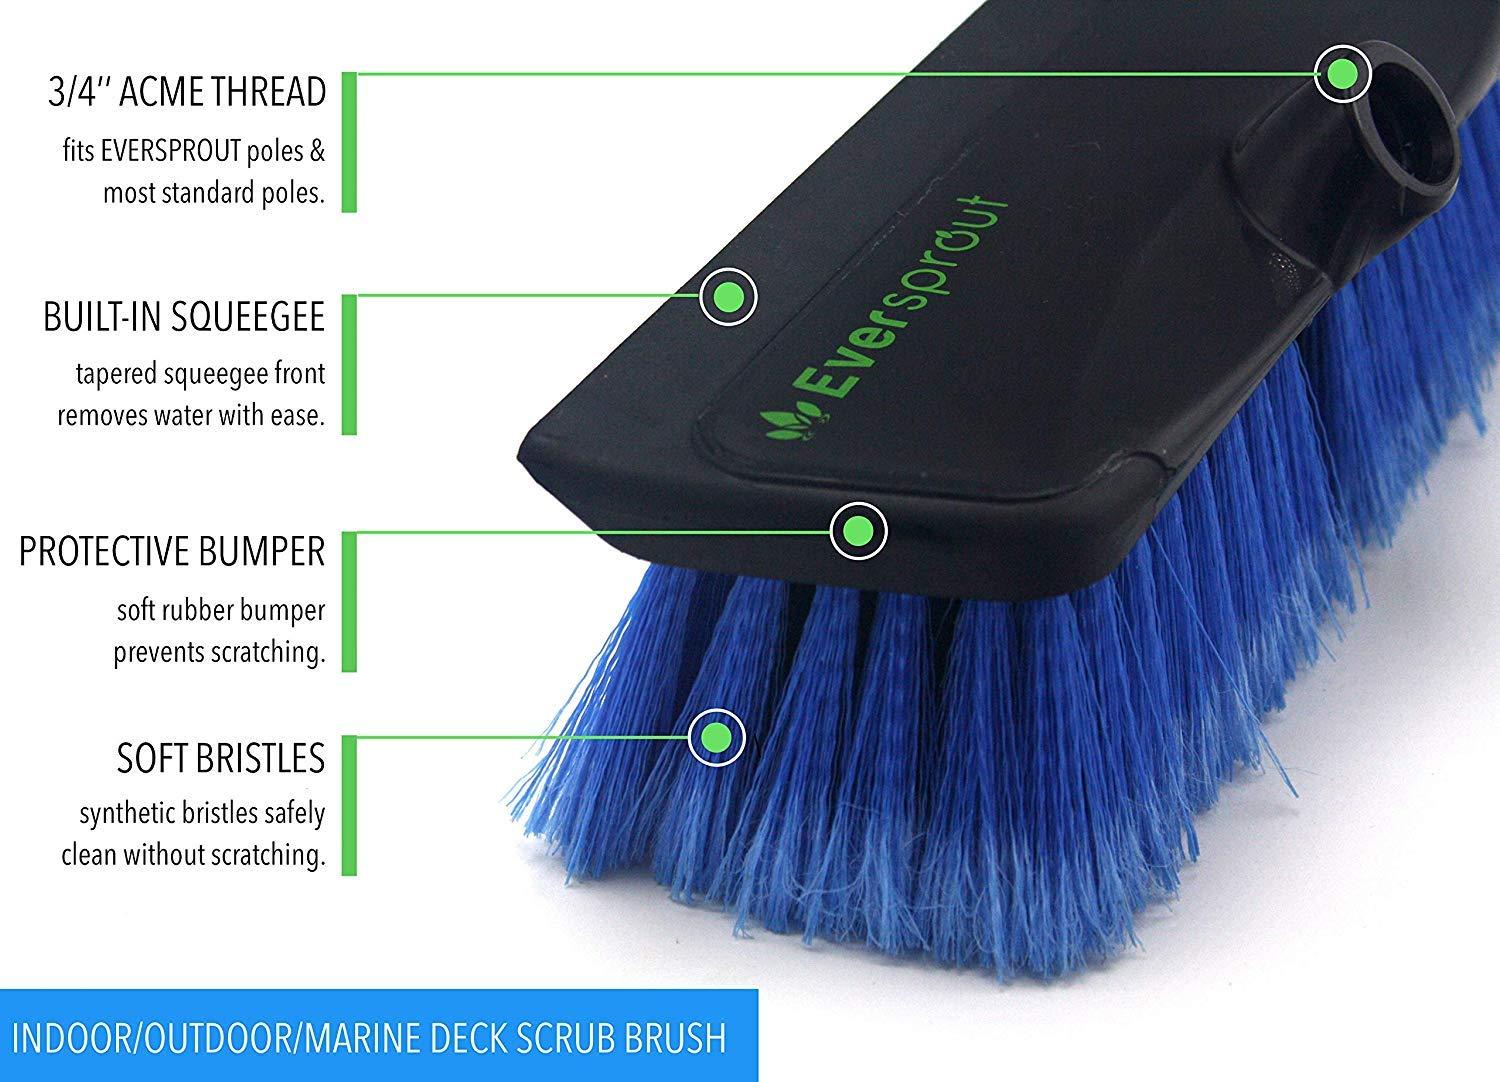 EVERSPROUT 5-to-12 Foot Scrub Brush (20 Foot Reach) | Built-in Rubber Bumper | Lightweight Extension Pole Handle | Soft Bristles to Wash Car, RV, Boat, Deck, Floor | Bumper Prevents Scratch by EVERSPROUT (Image #5)